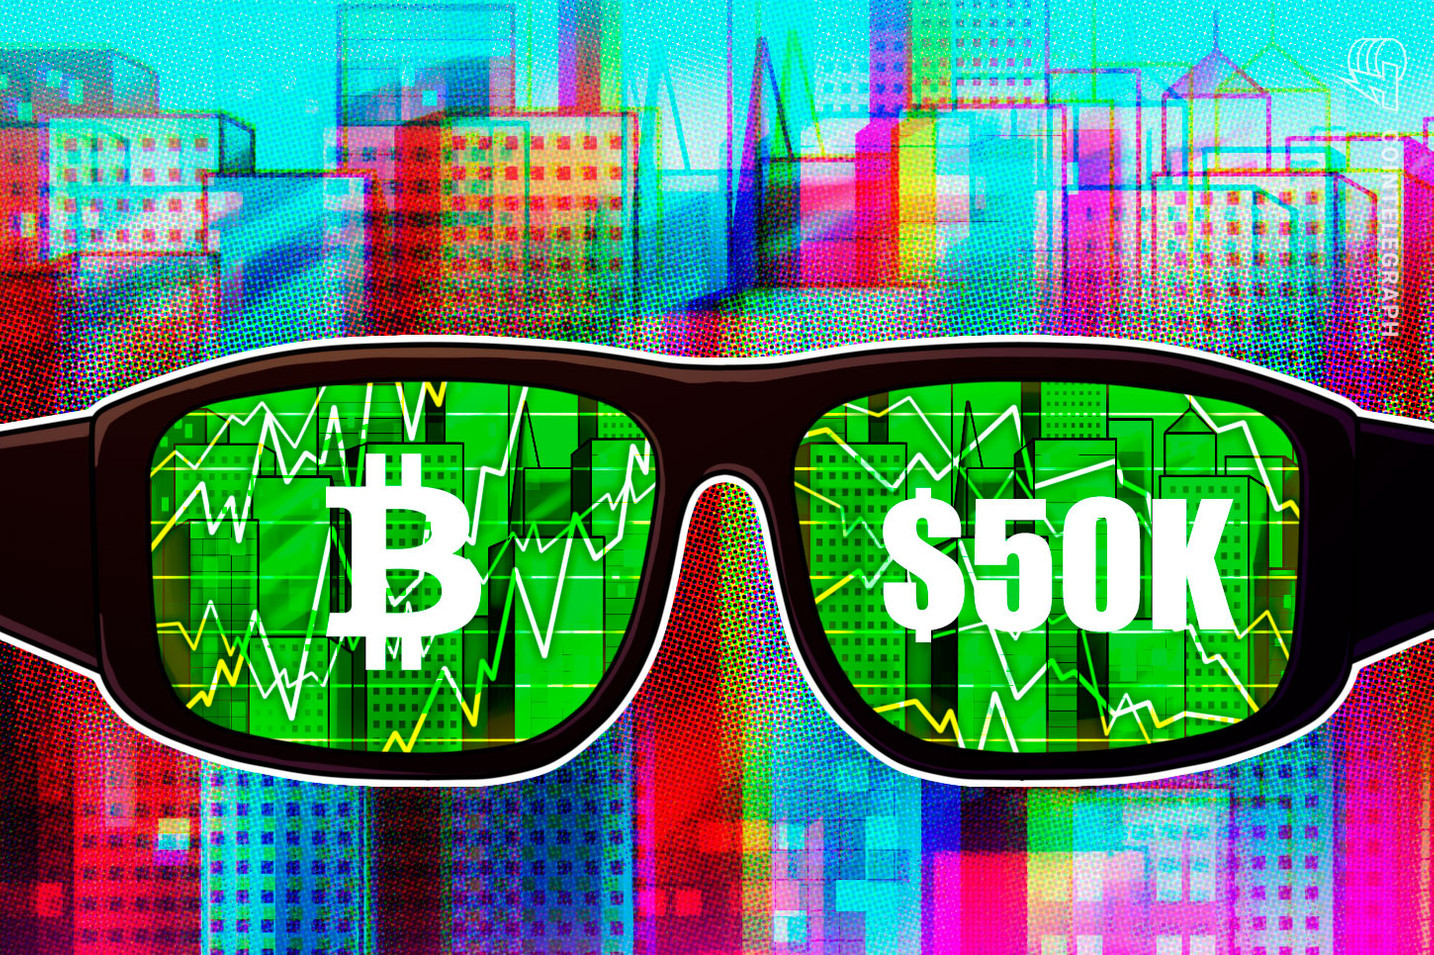 Bitcoin taps $50K for first time in one month amid heavy BTC price volatility